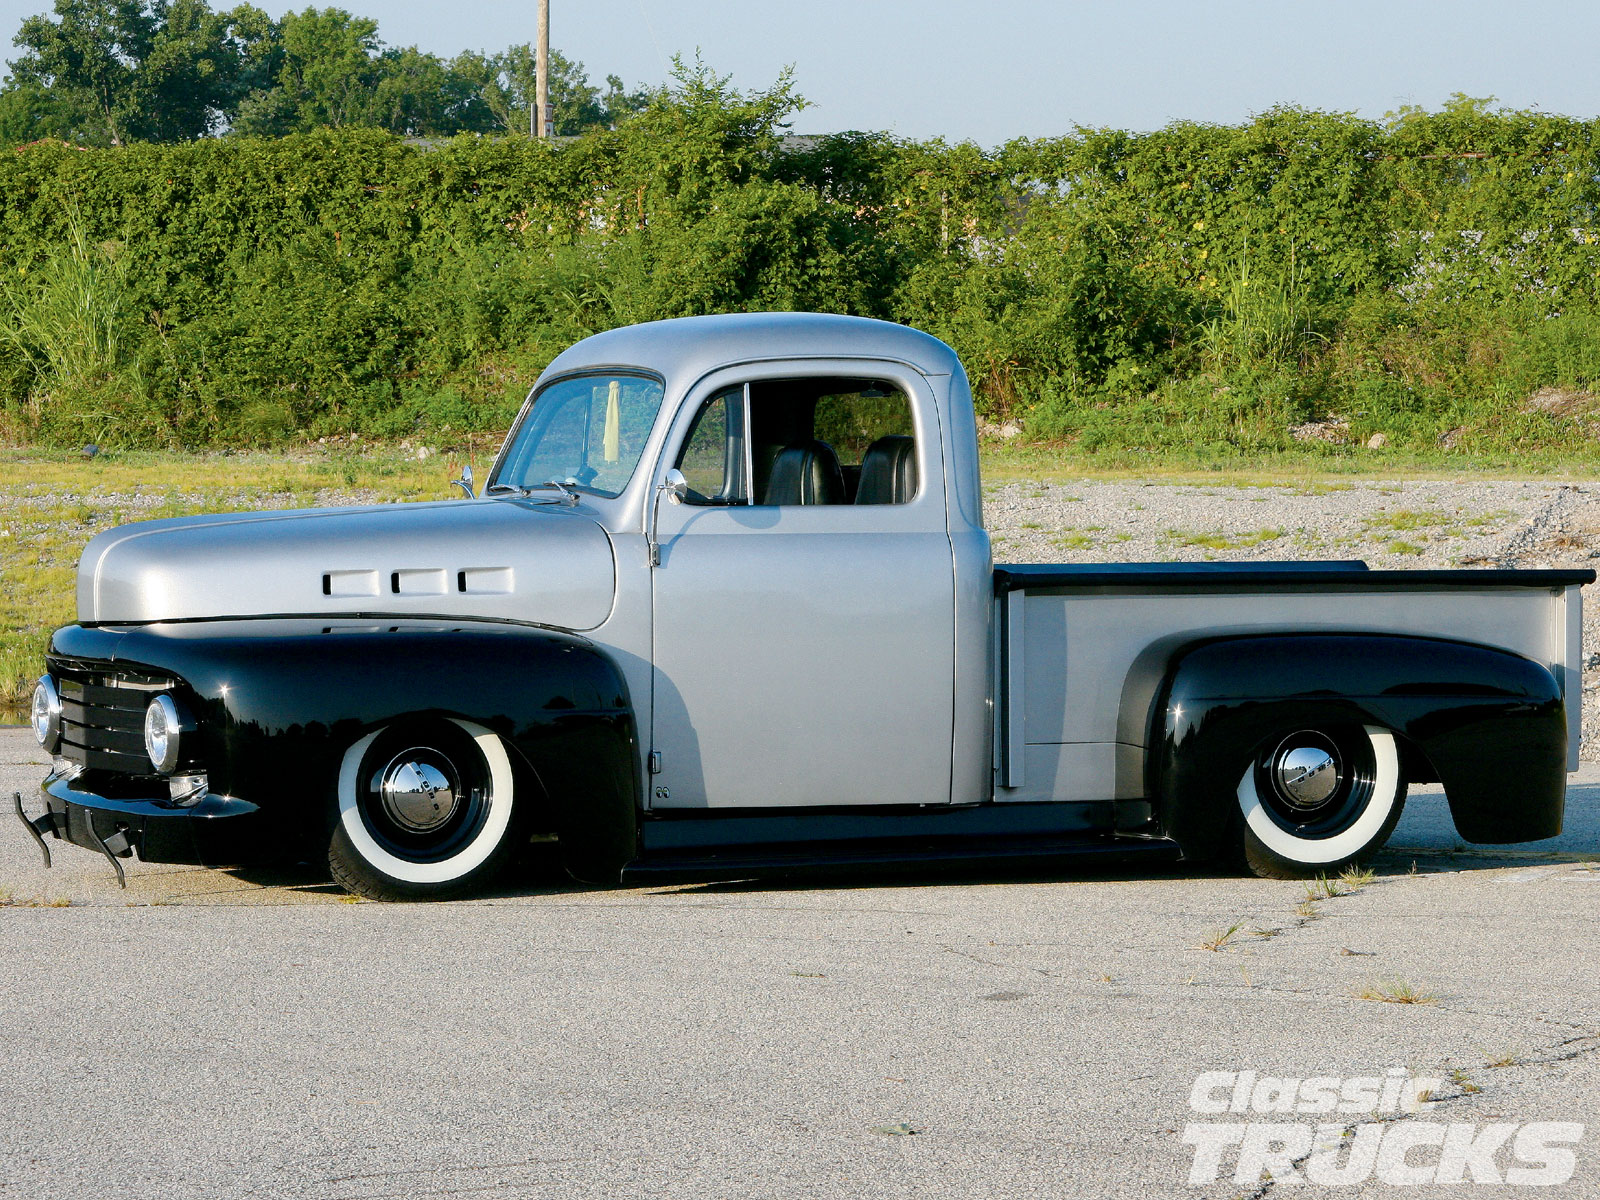 Ford Truck 1948 Review Amazing Pictures And Images Look At The Car Panel Photo 1